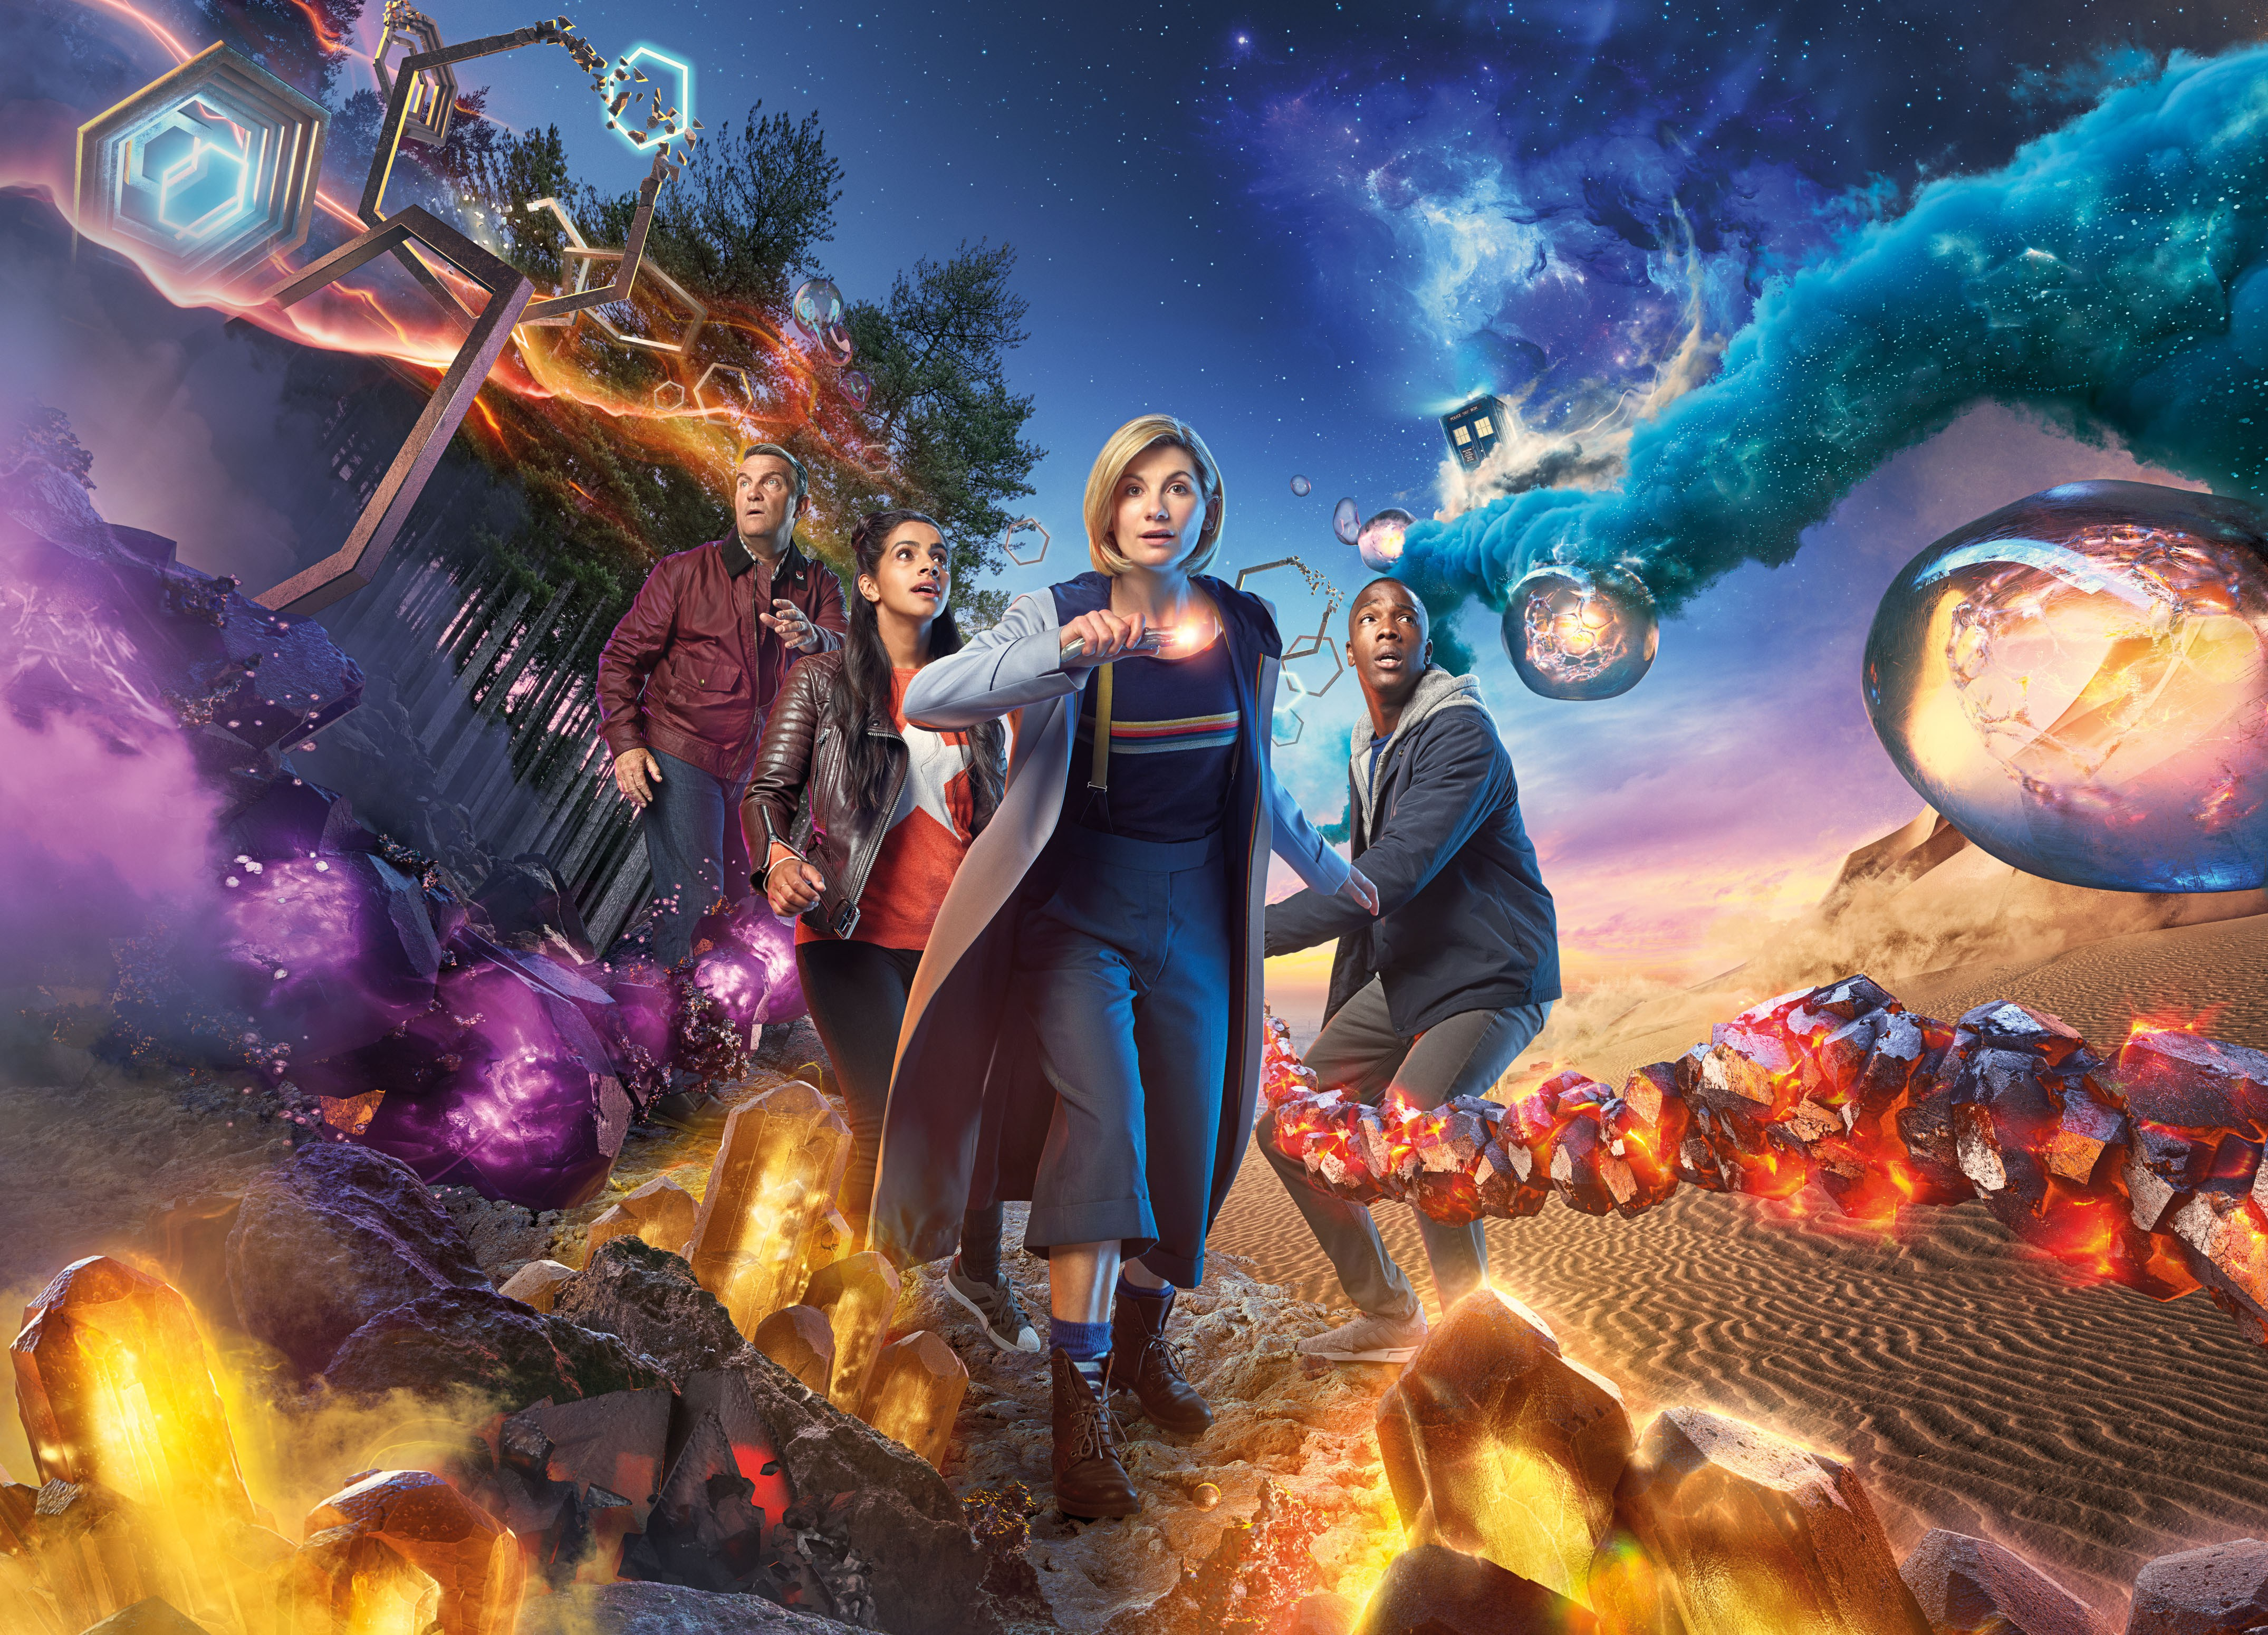 Doctor who season 11 4k 2018 hd tv shows 4k wallpapers - Tv series wallpaper 4k ...